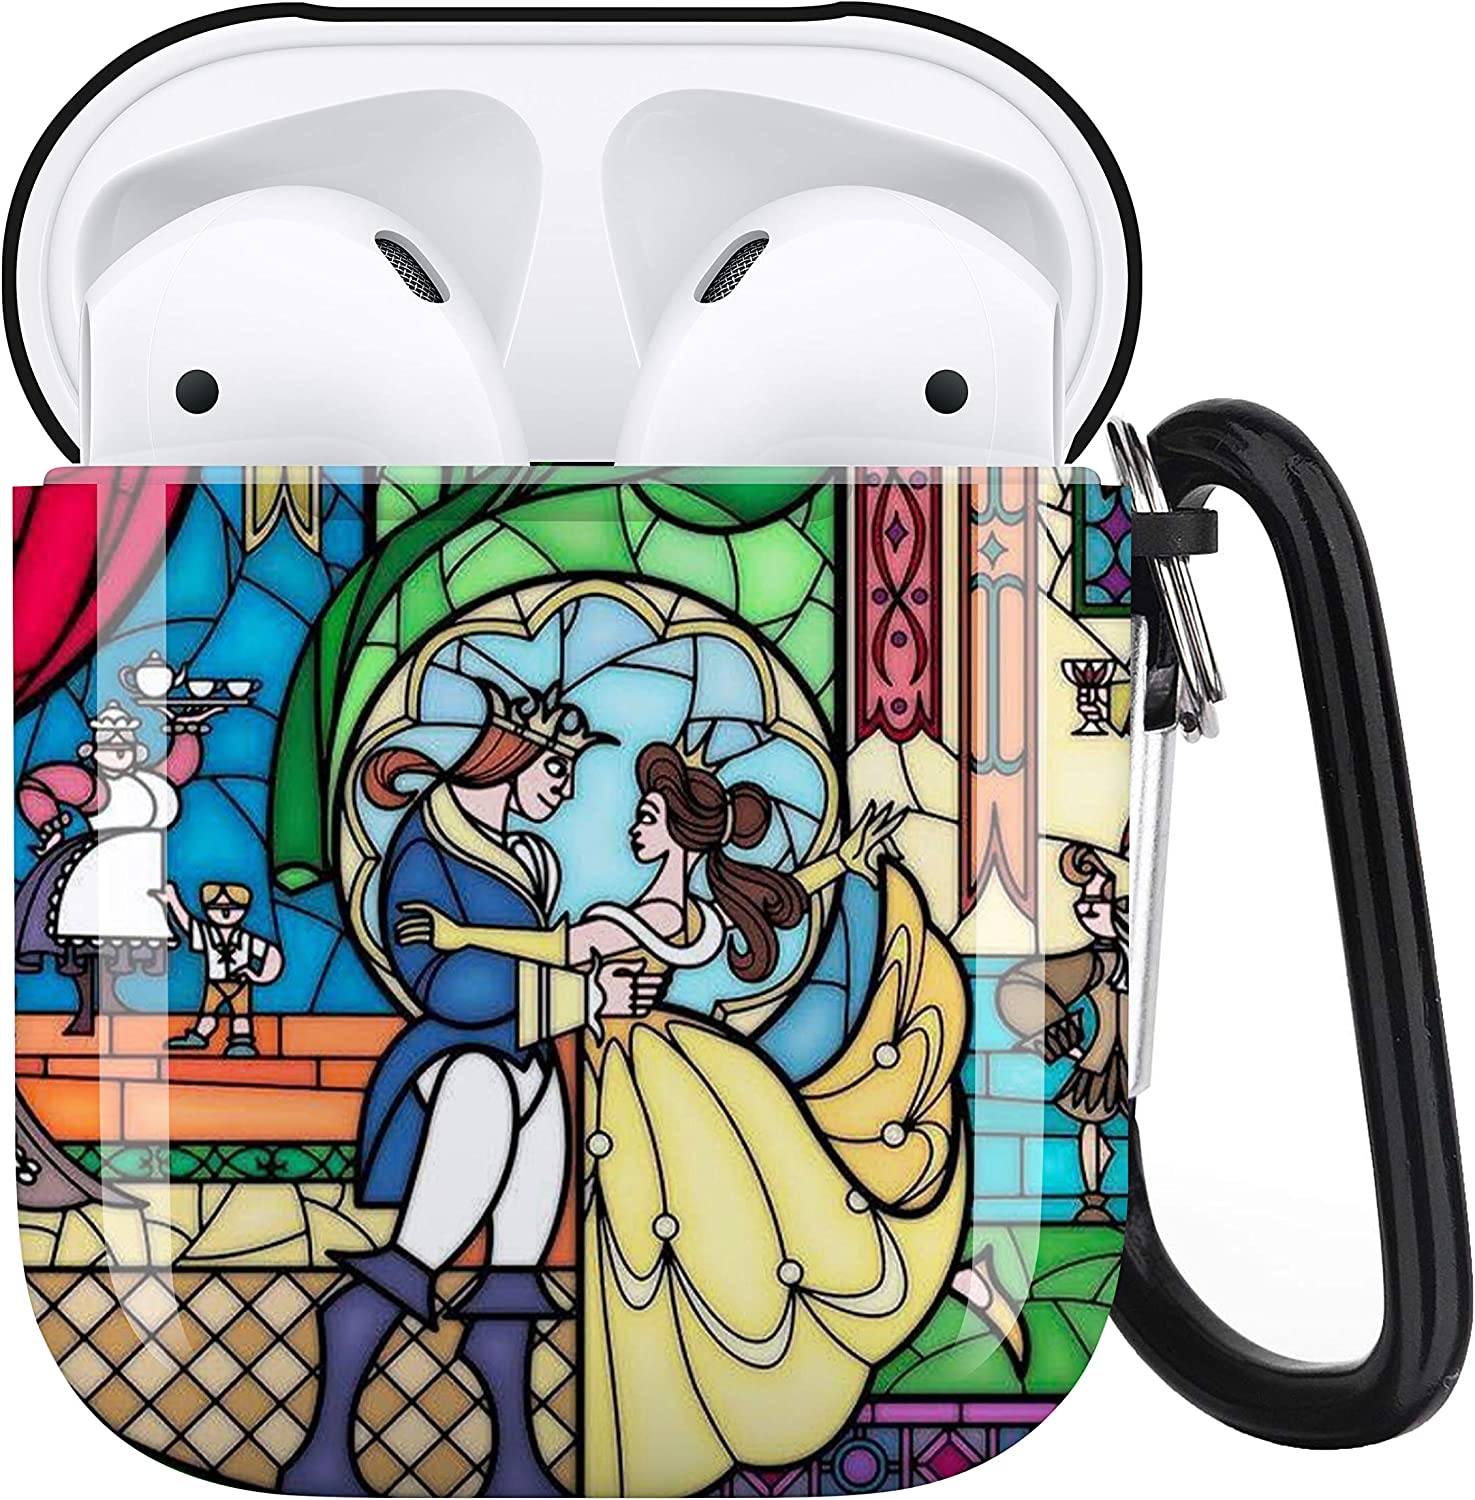 Disney Beauty and The Beast AirPods Case Personalize Custom, AirPods Case Cover Compatible with Apple AirPods 1st/2nd,Full Protective Durable Shockproof Drop Proof with Key Chain Compatible